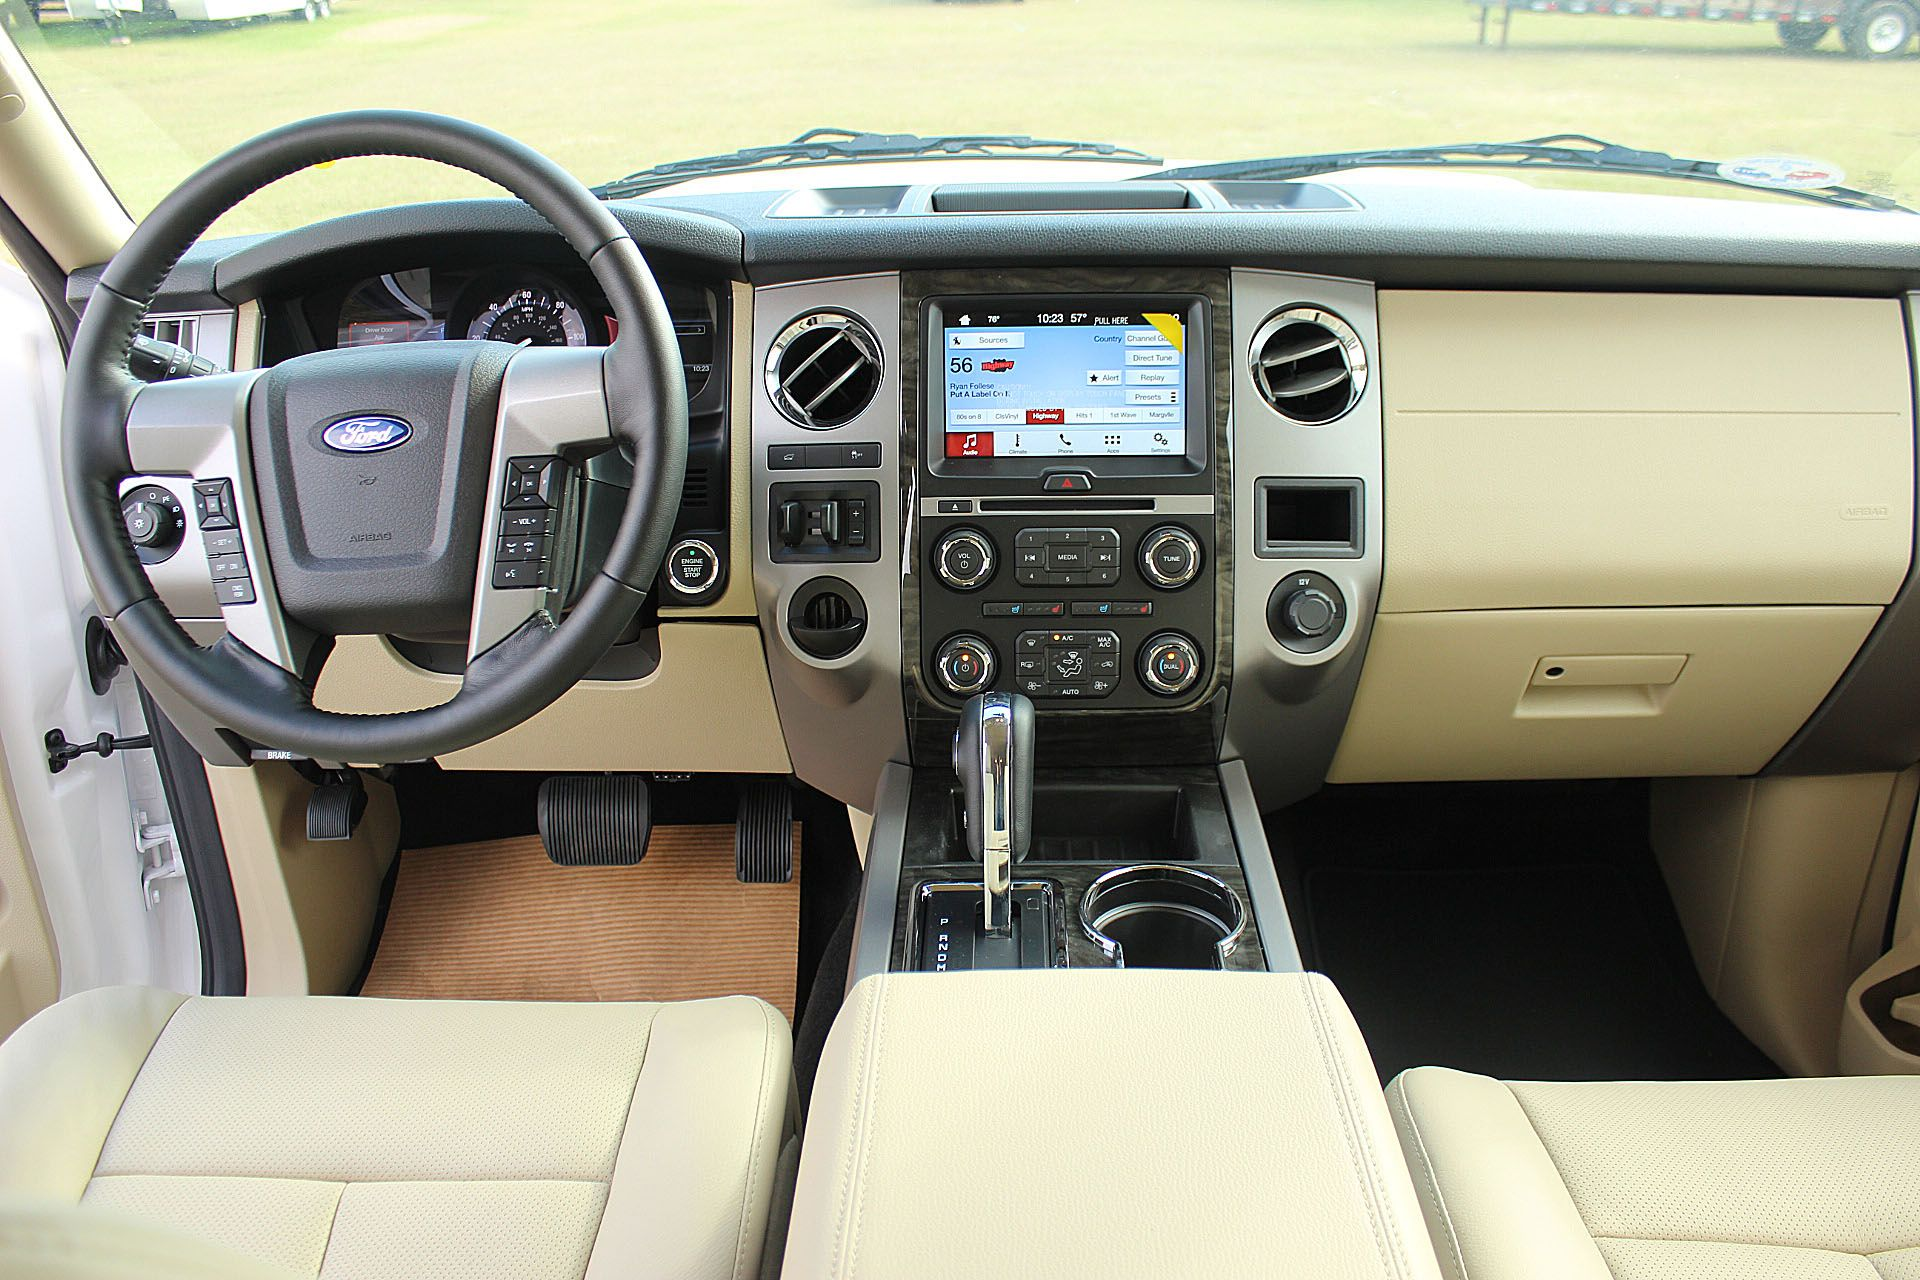 Expedition El Interior View